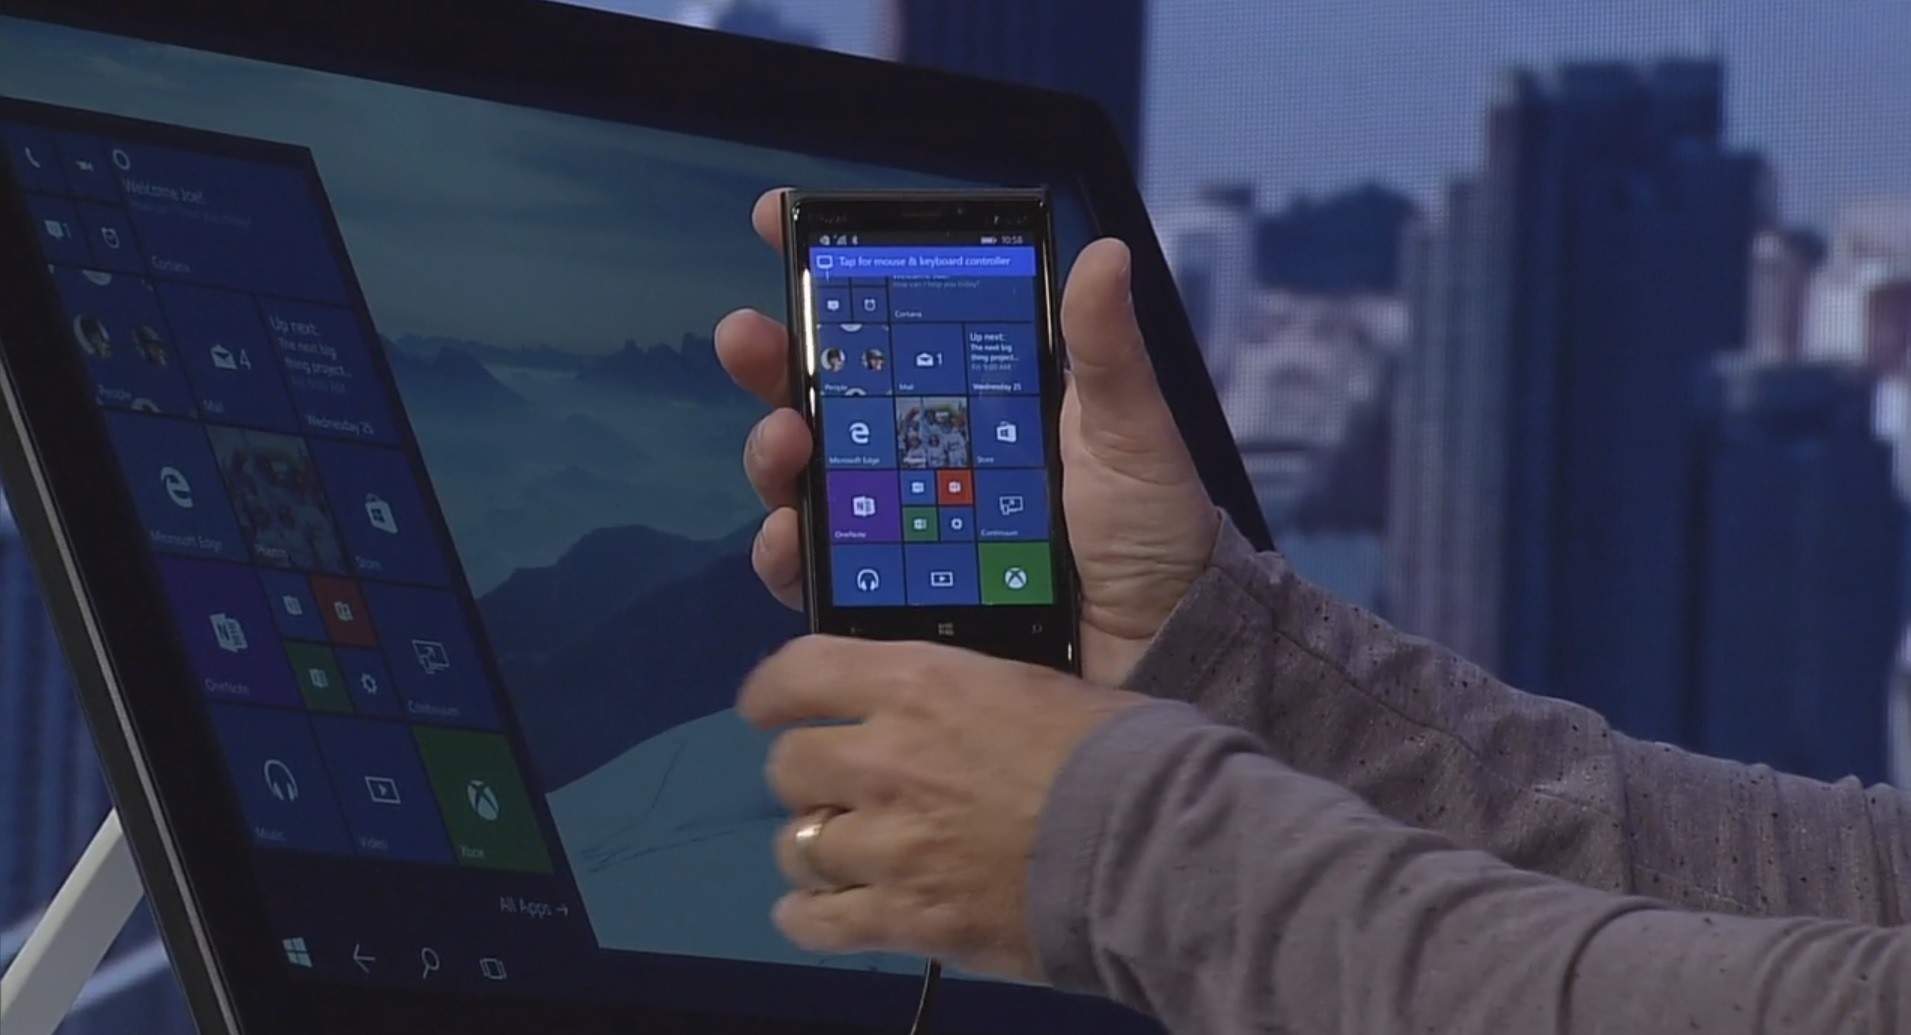 Windows 10 mobile Continuum turns your phone into a desktop PC